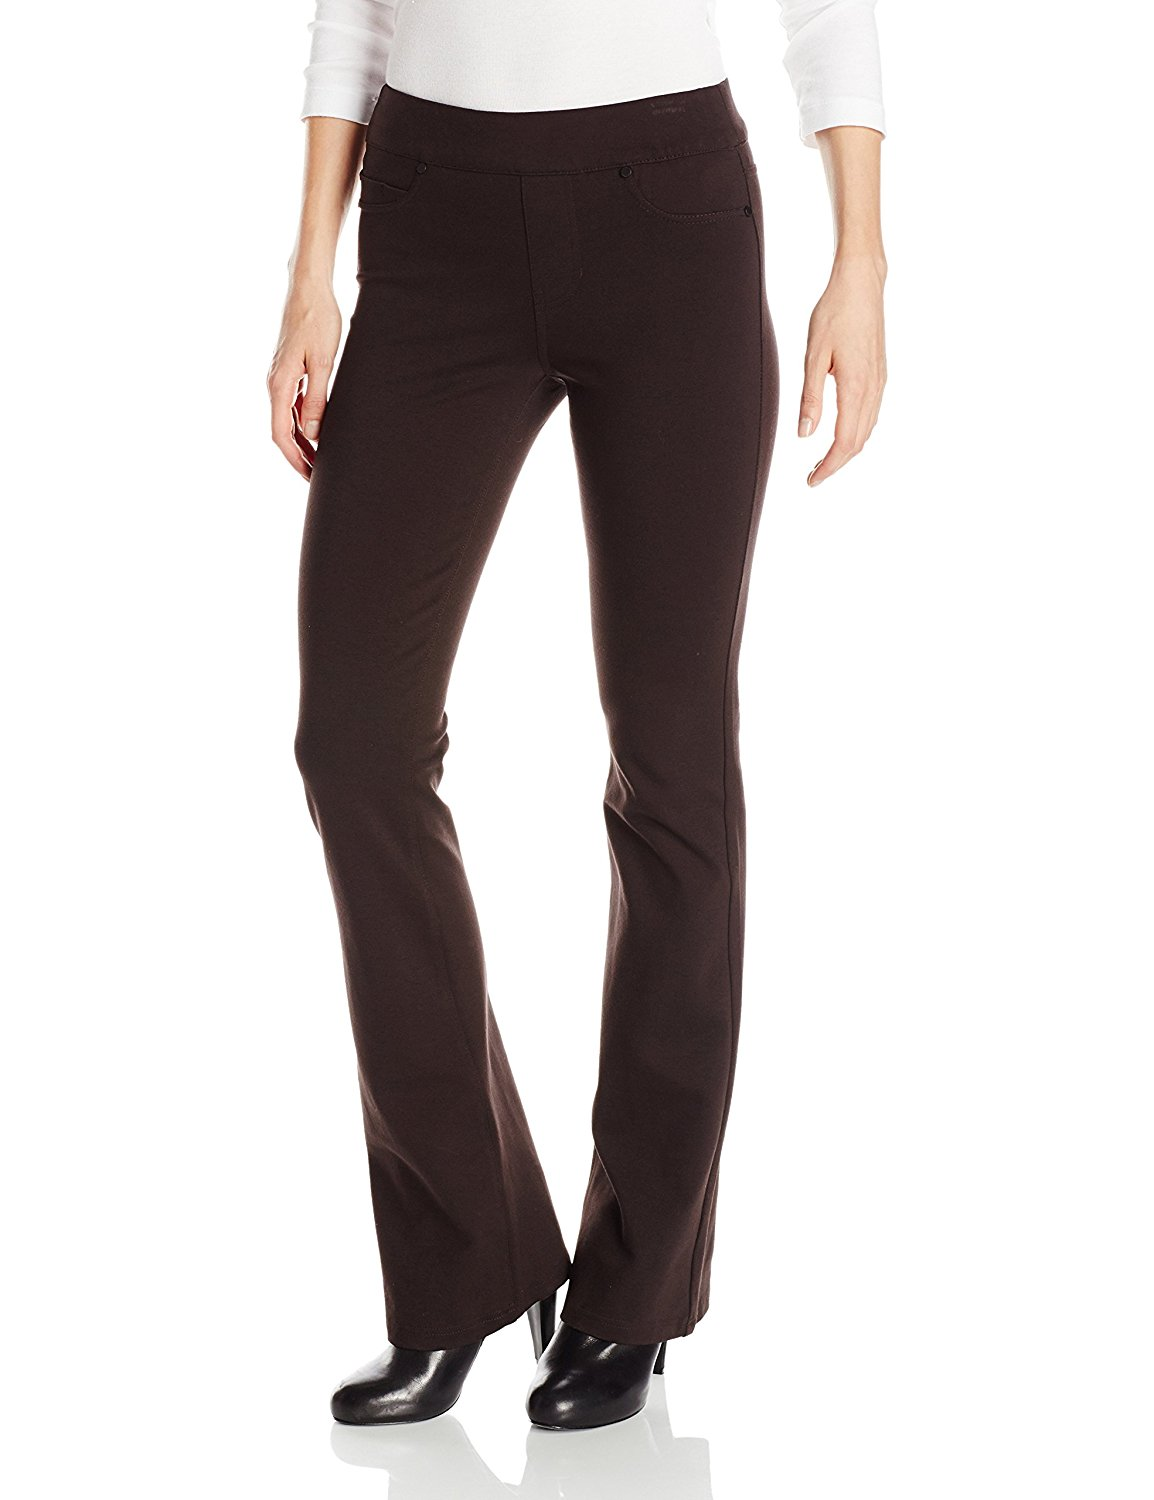 Liverpool Jeans Company Women's Liverpool Kimberly Pull-On Bootcut Mid Rise In Ponte Knit